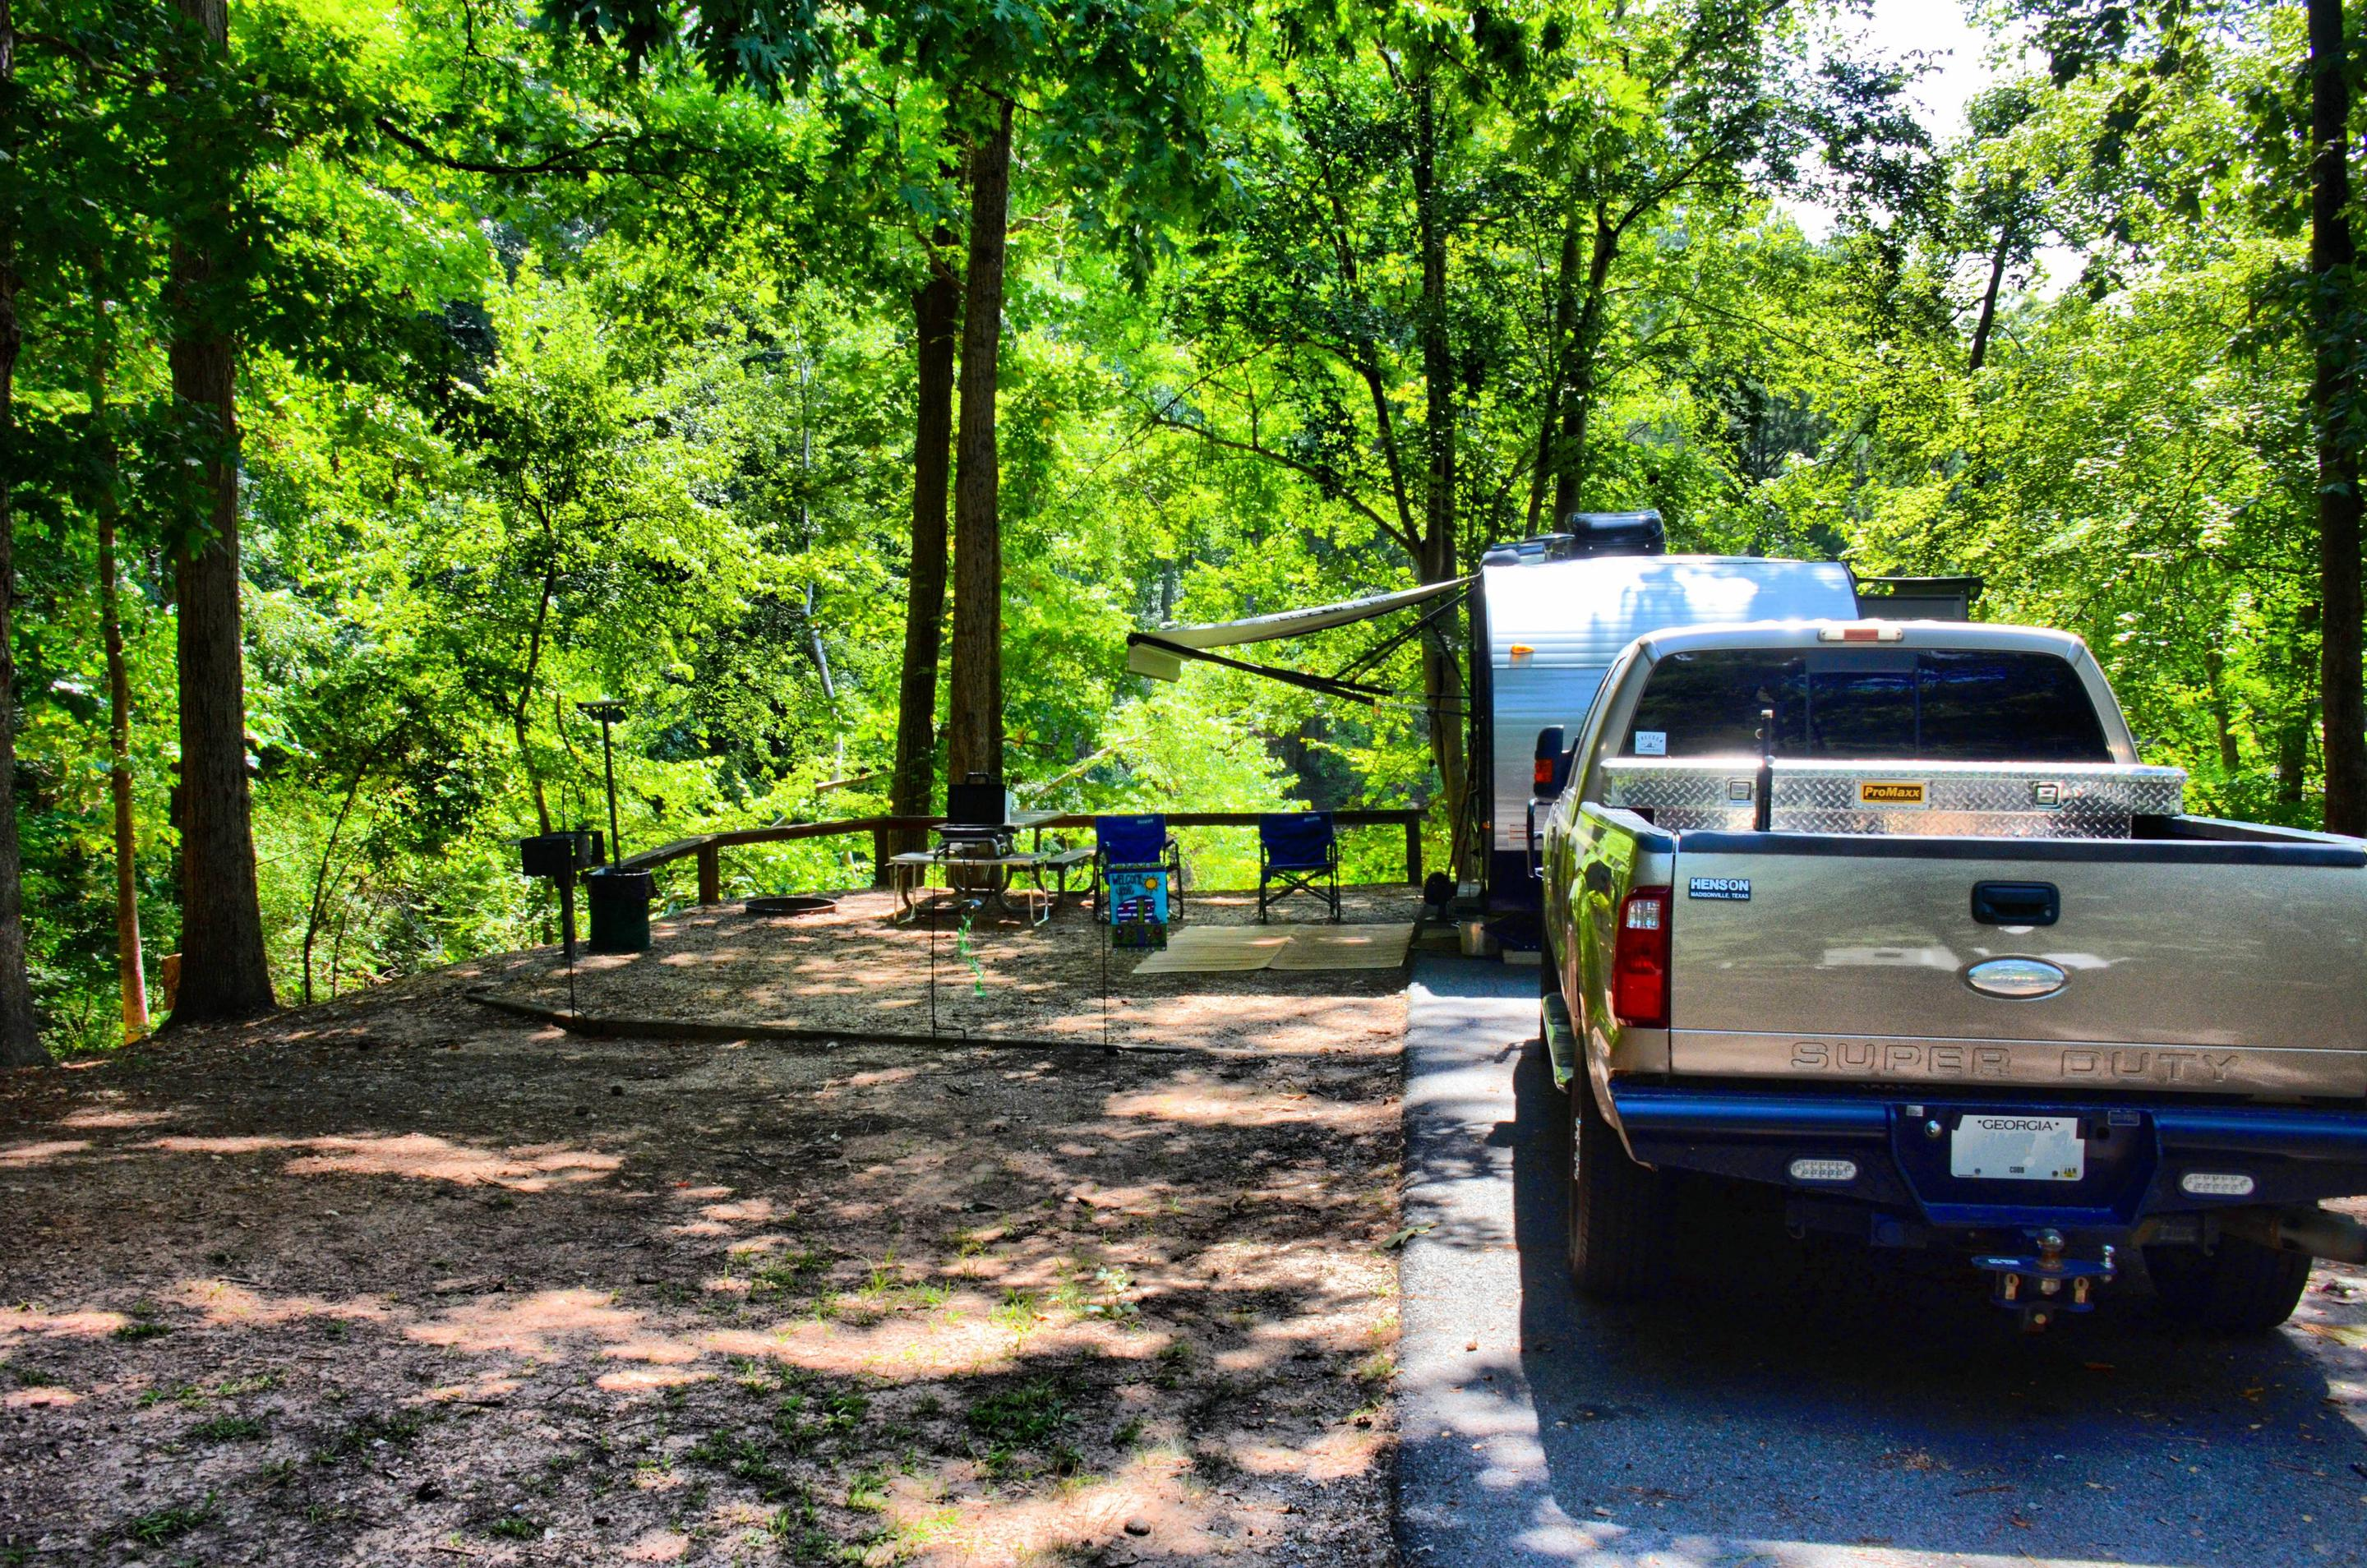 Awning-side clearance, campsite view.McKinney Campground, campsite 100.